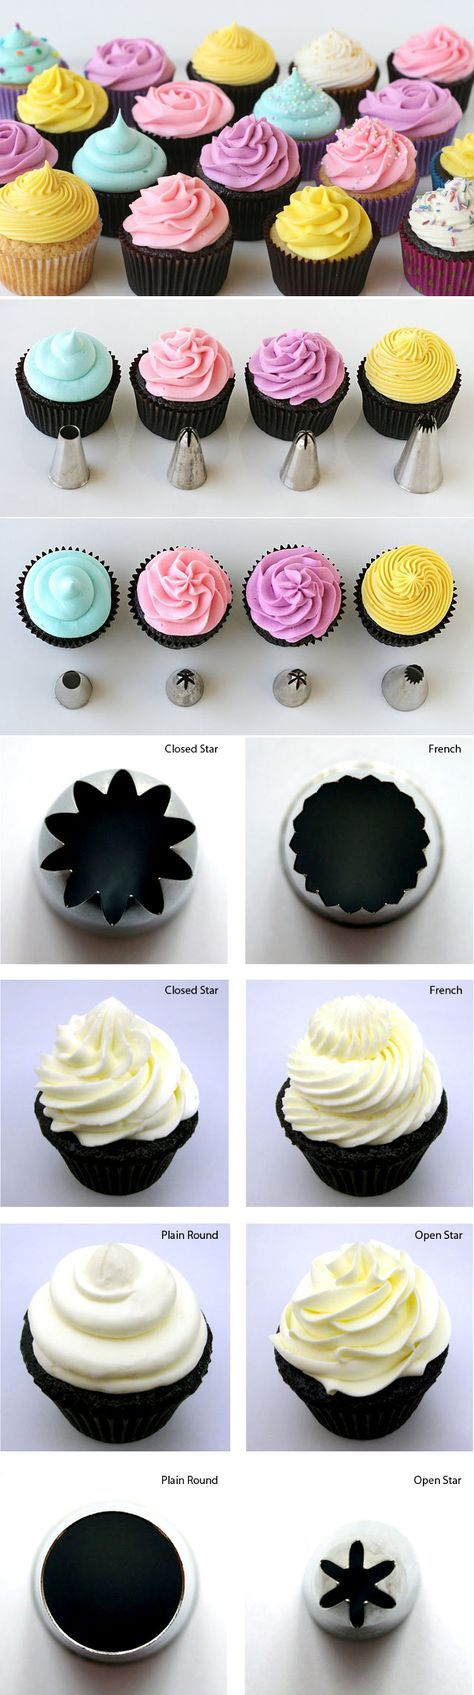 {Cupcake Basics} How to Frost Cupcakes Piping tips, Tips ...